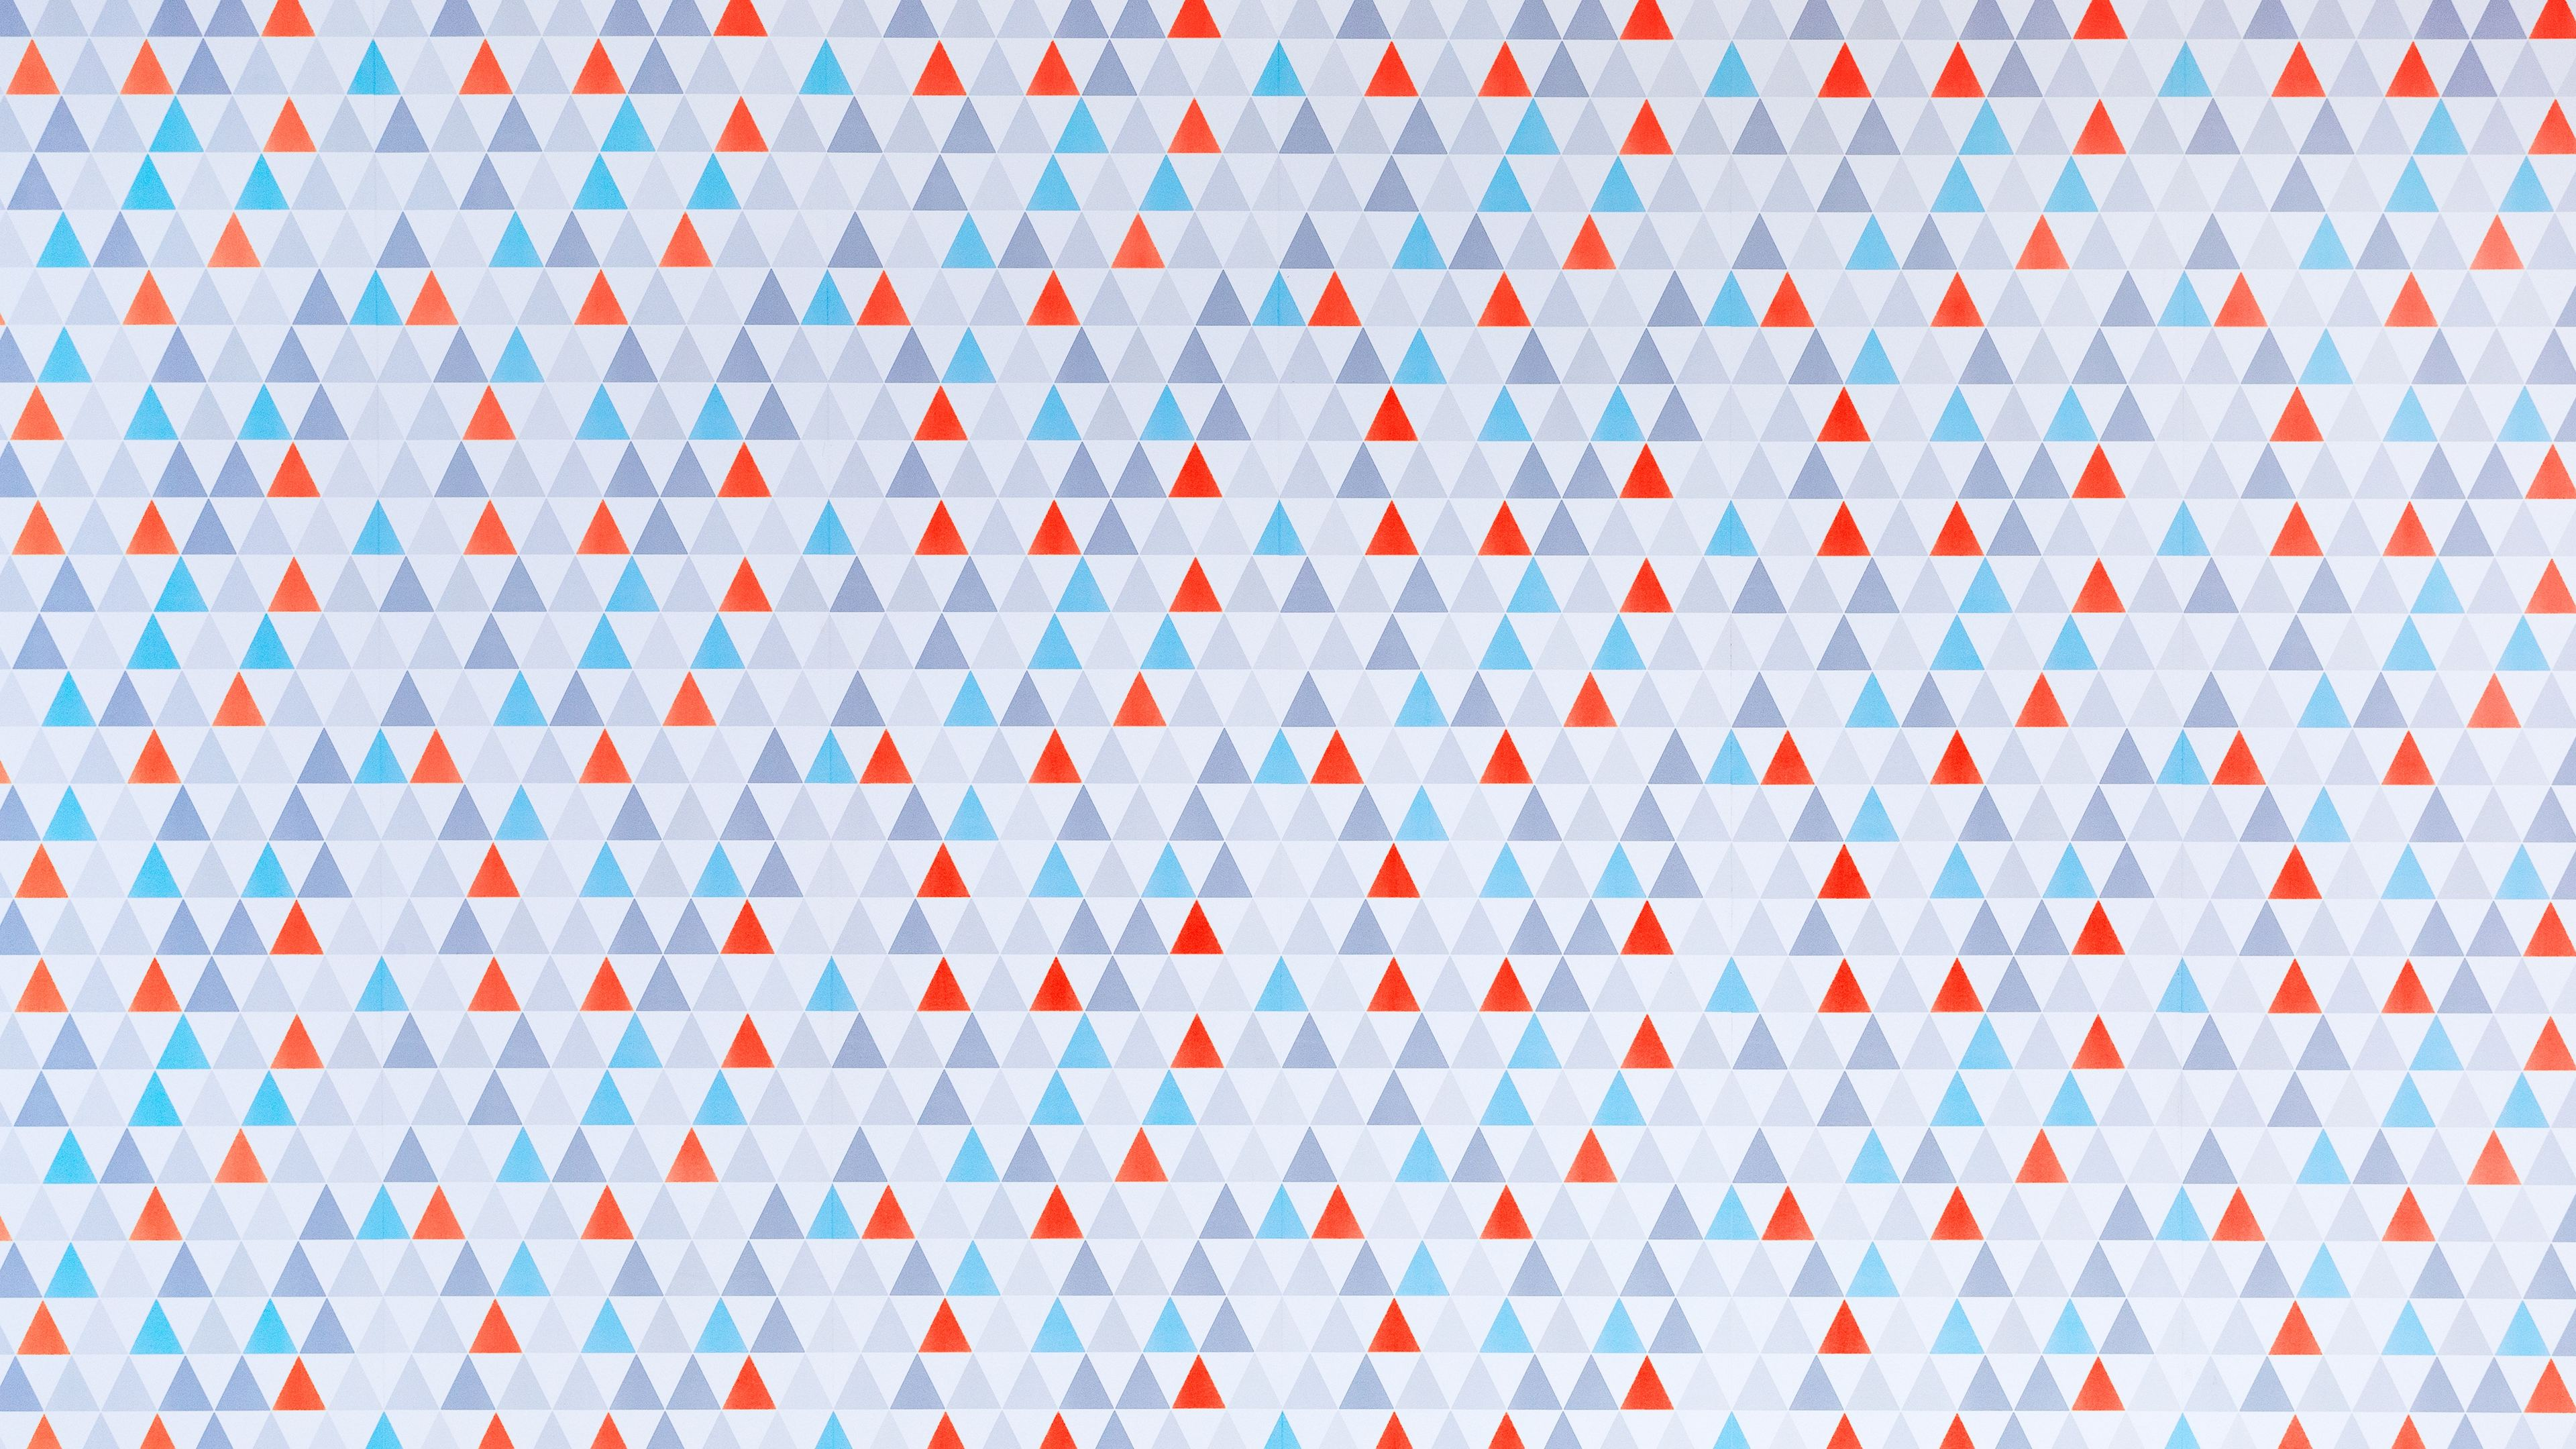 triangle pattern abstract 4k 1539371399 - Triangle Pattern Abstract 4k - triangle wallpapers, pattern wallpapers, hd-wallpapers, abstract wallpapers, 4k-wallpapers